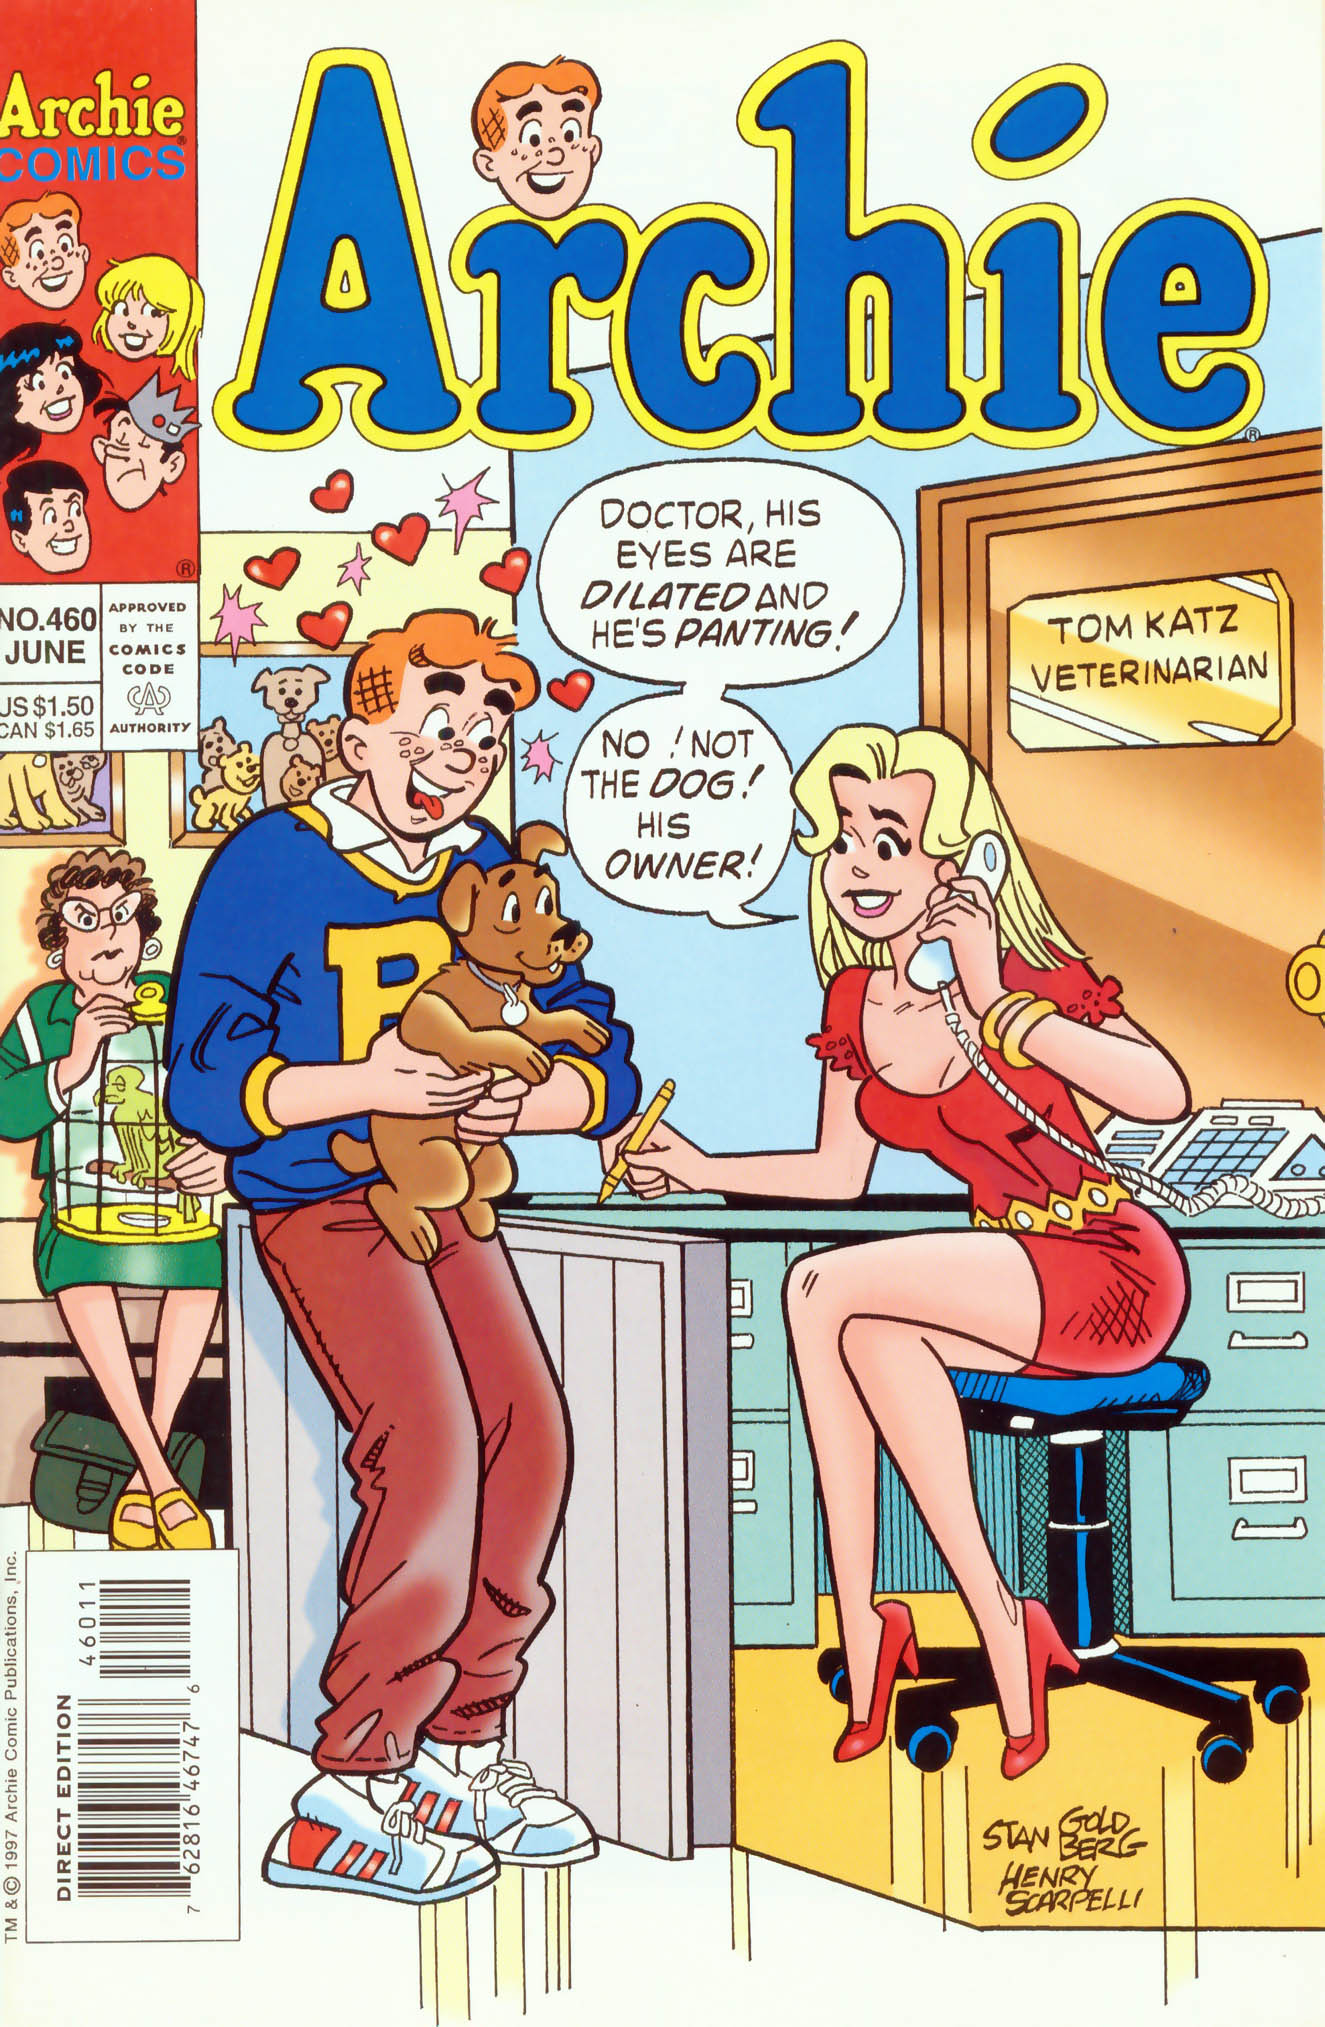 Read online Archie (1960) comic -  Issue #460 - 1